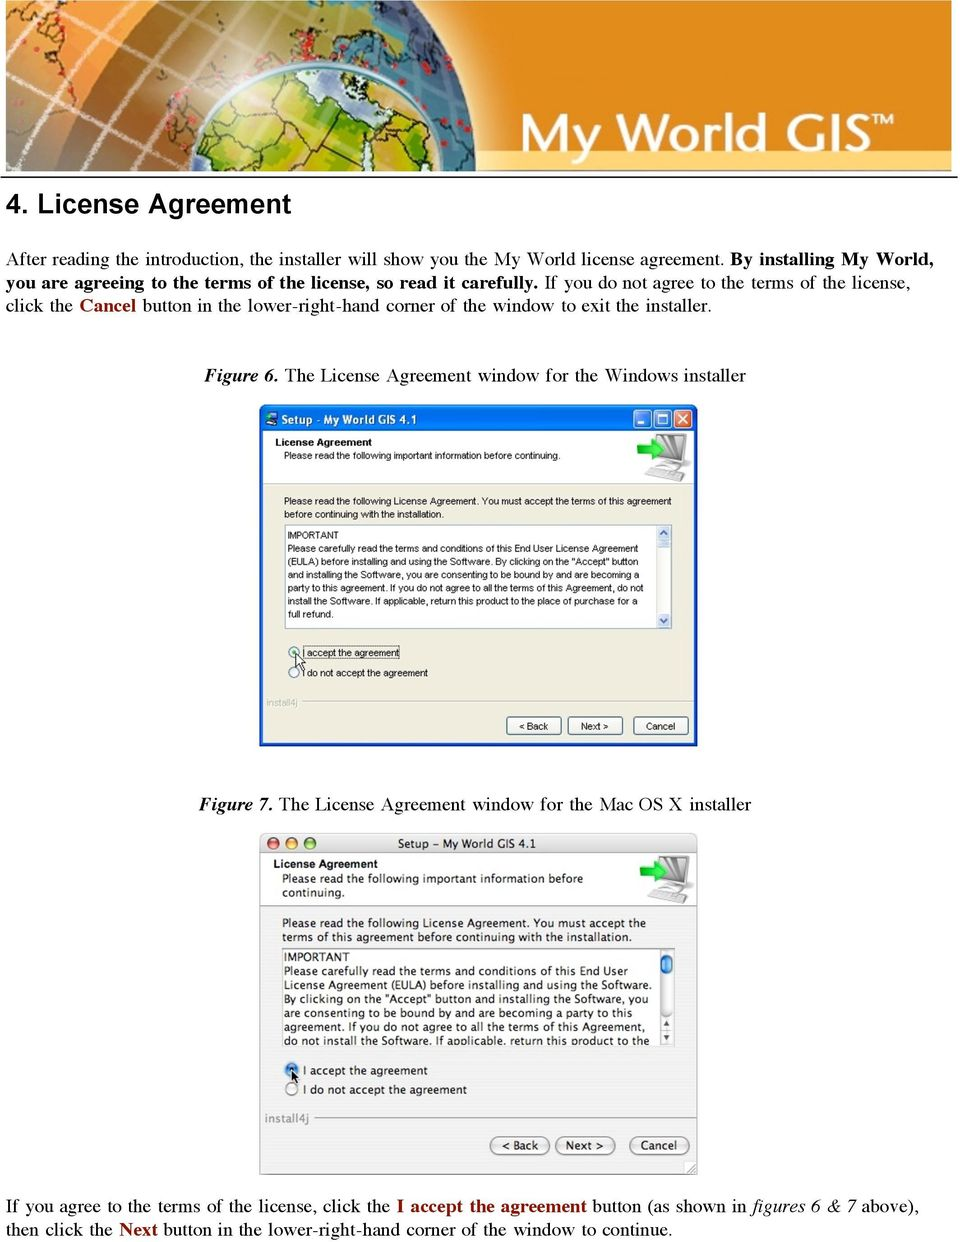 If you do not agree to the terms of the license, click the Cancel button in the lower-right-hand corner of the window to exit the installer. Figure 6.